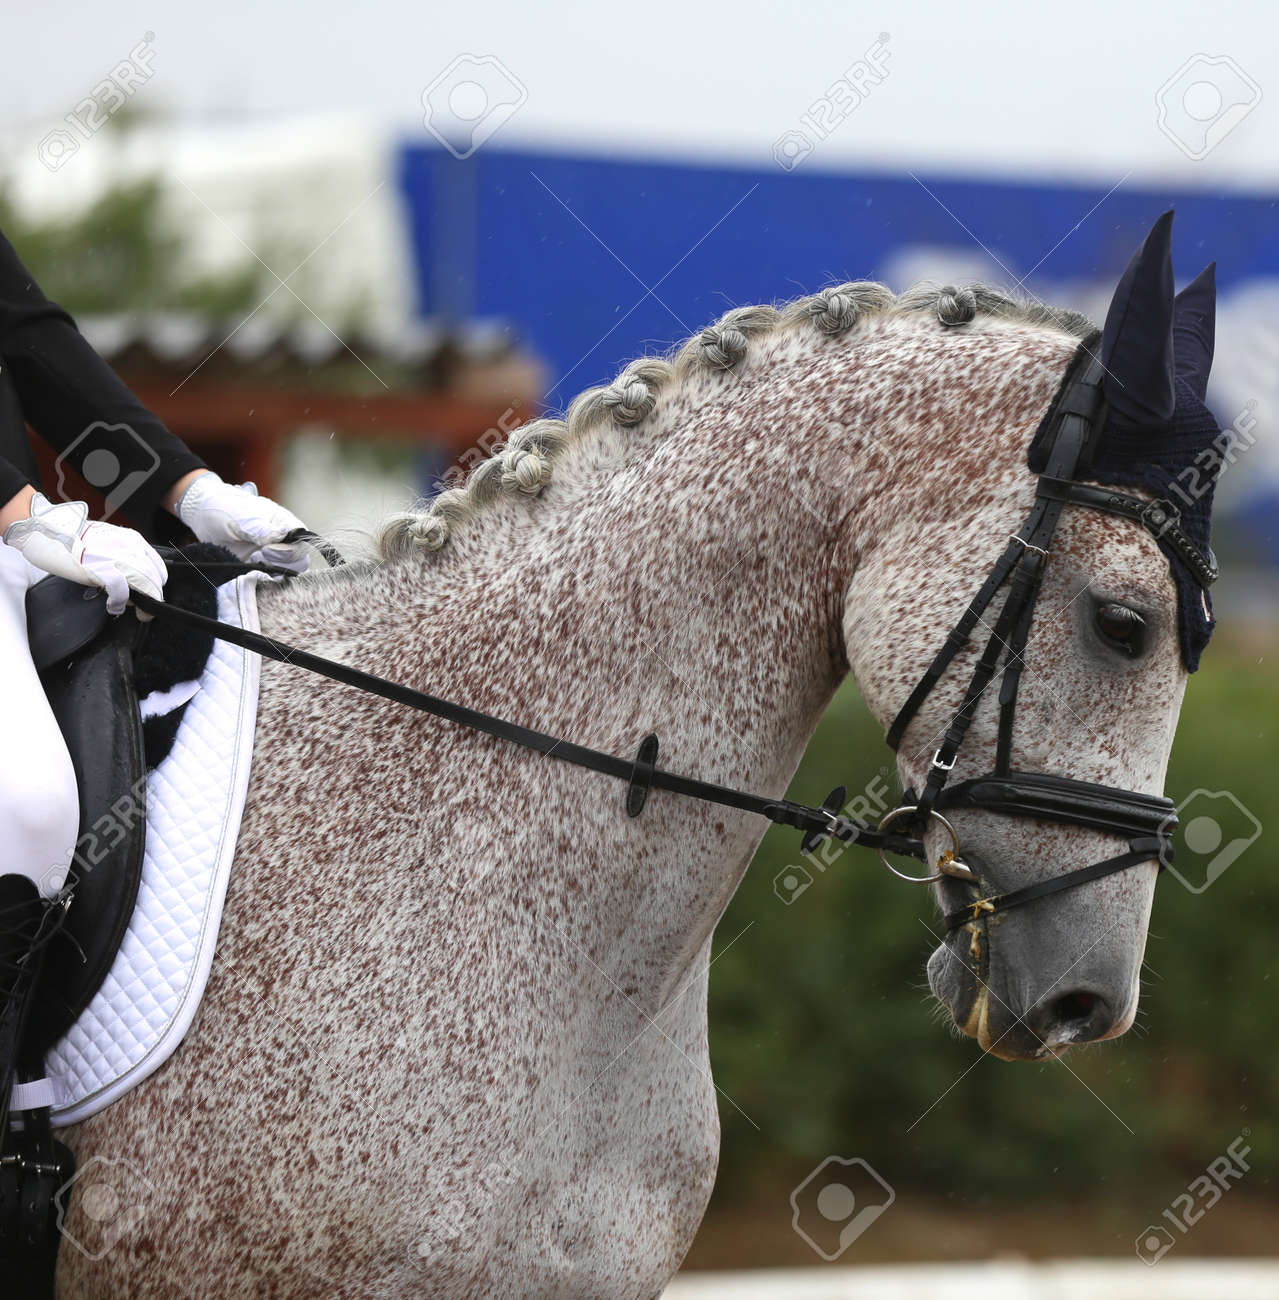 Unknown Contestant Rides At Dressage Horse Event In Riding Ground Stock Photo Picture And Royalty Free Image Image 138020365